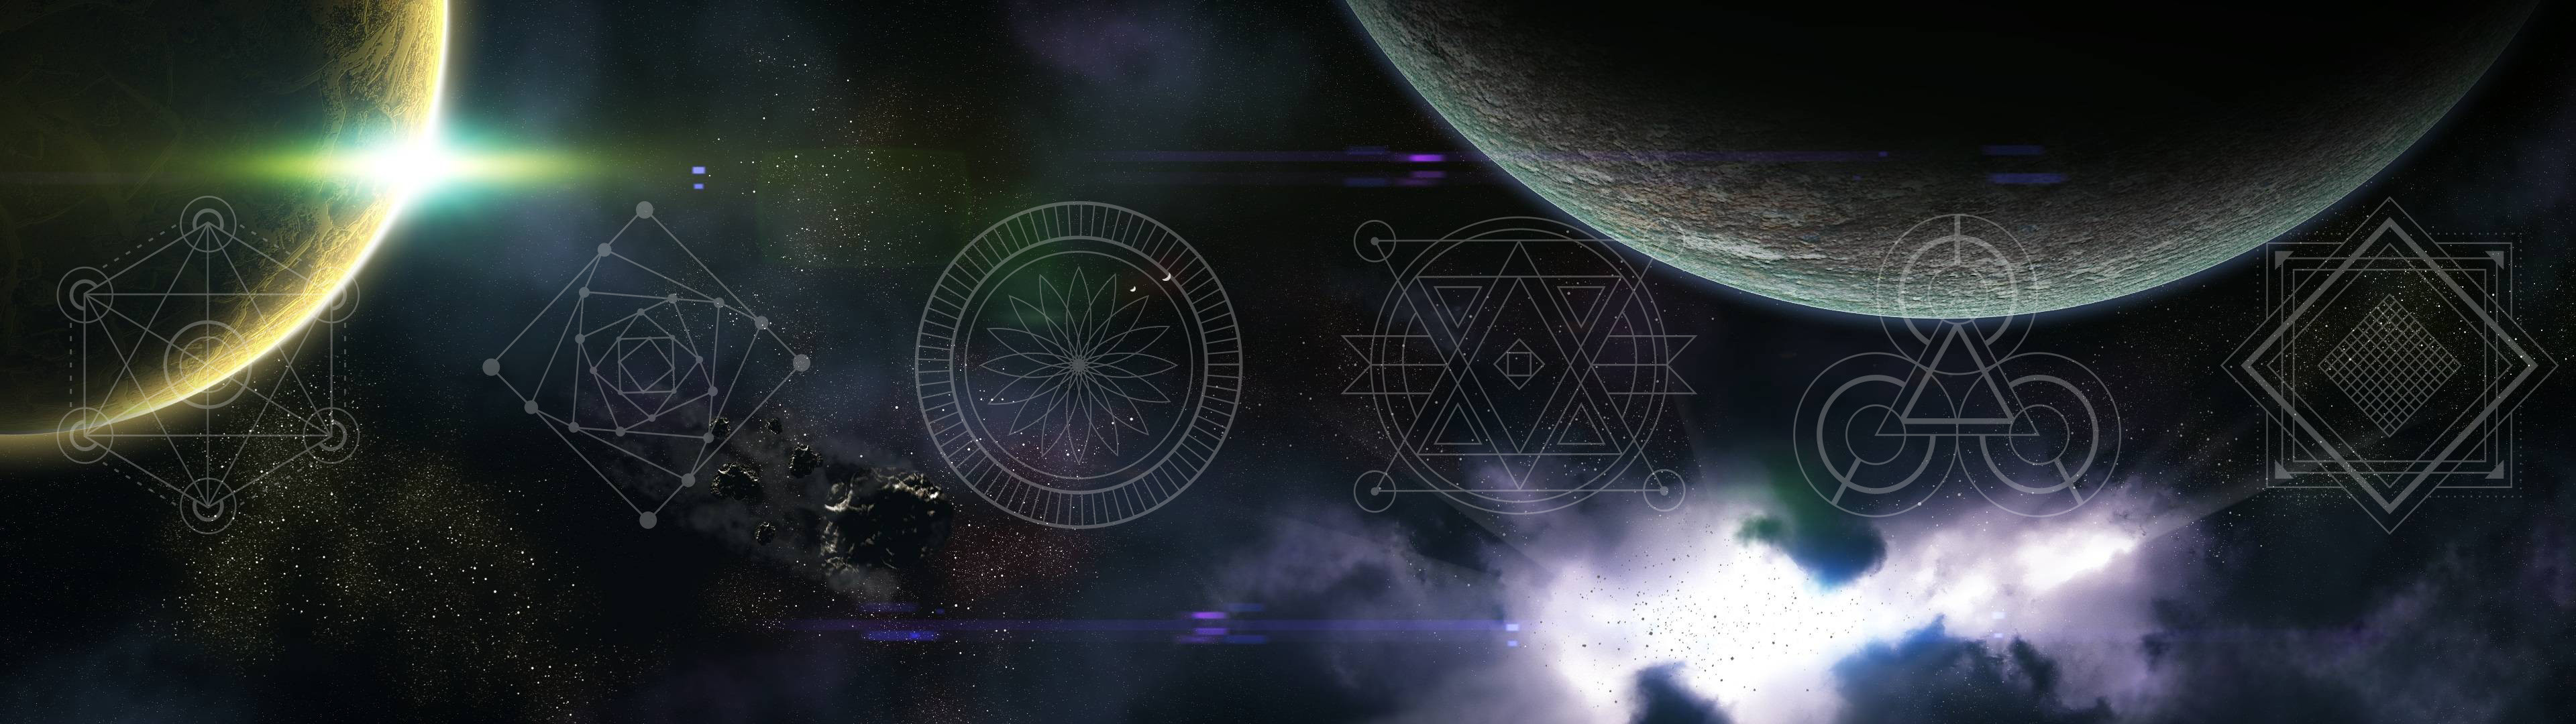 Sacred geometry and space wallpapers (part1)